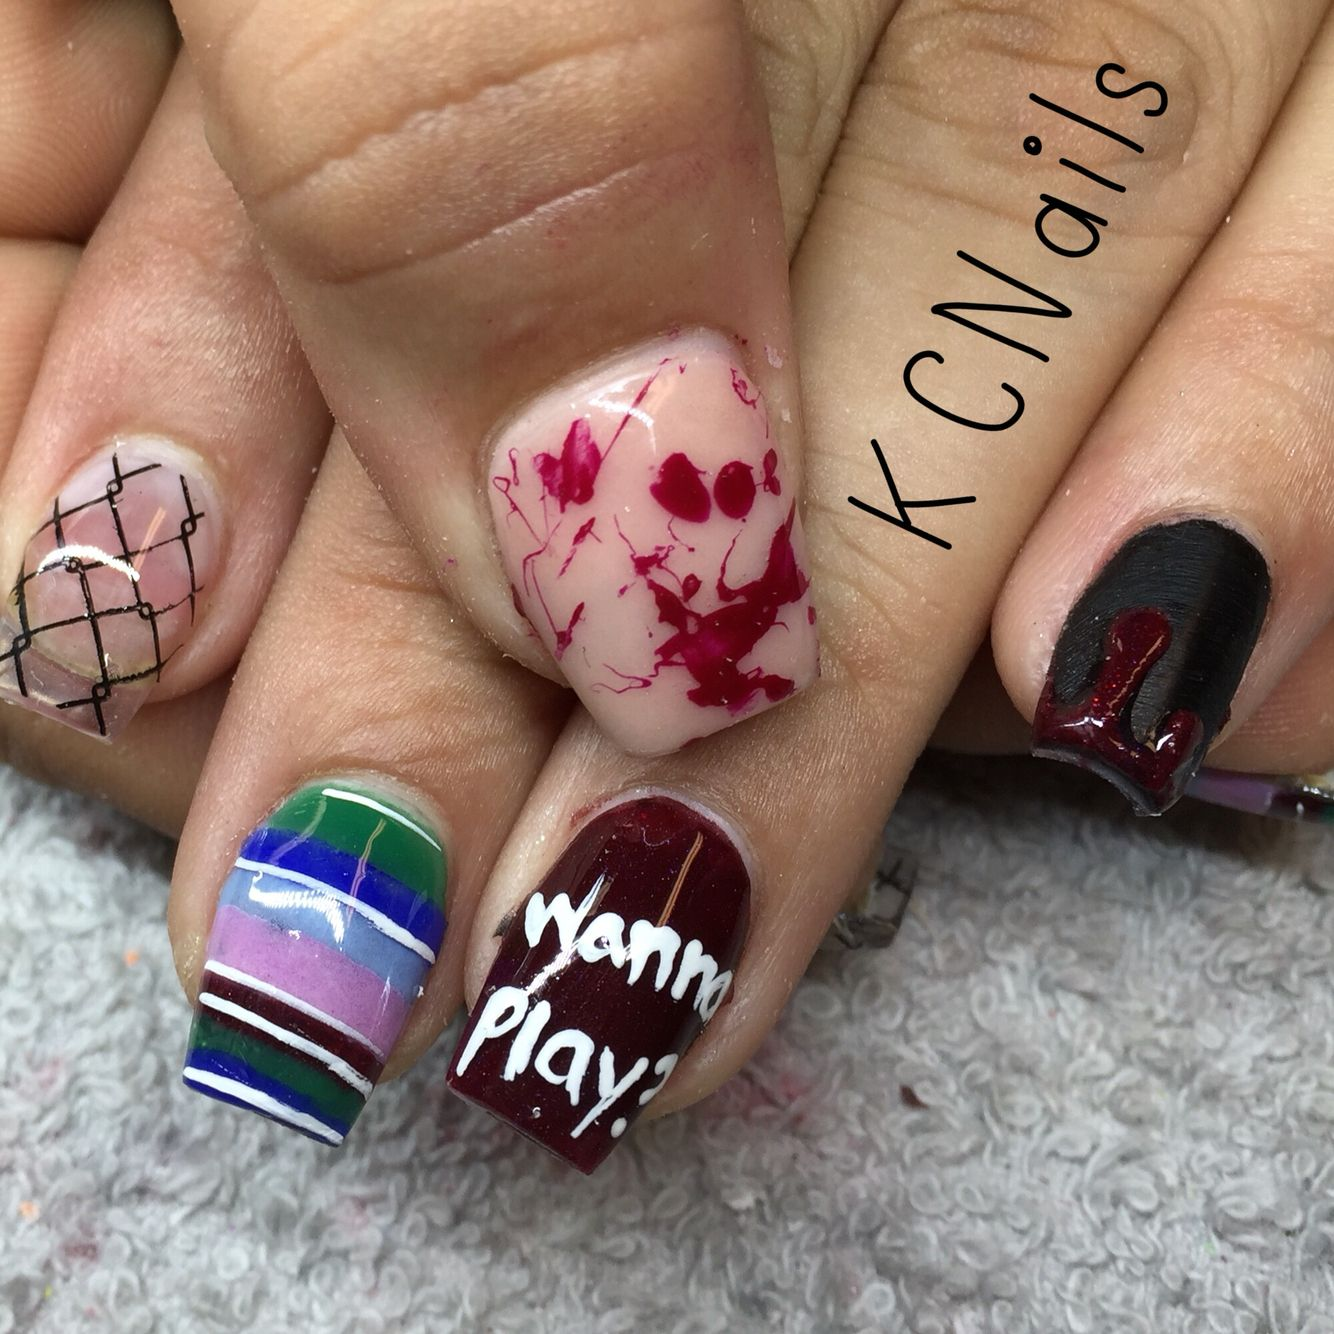 Pin on Nail Tech